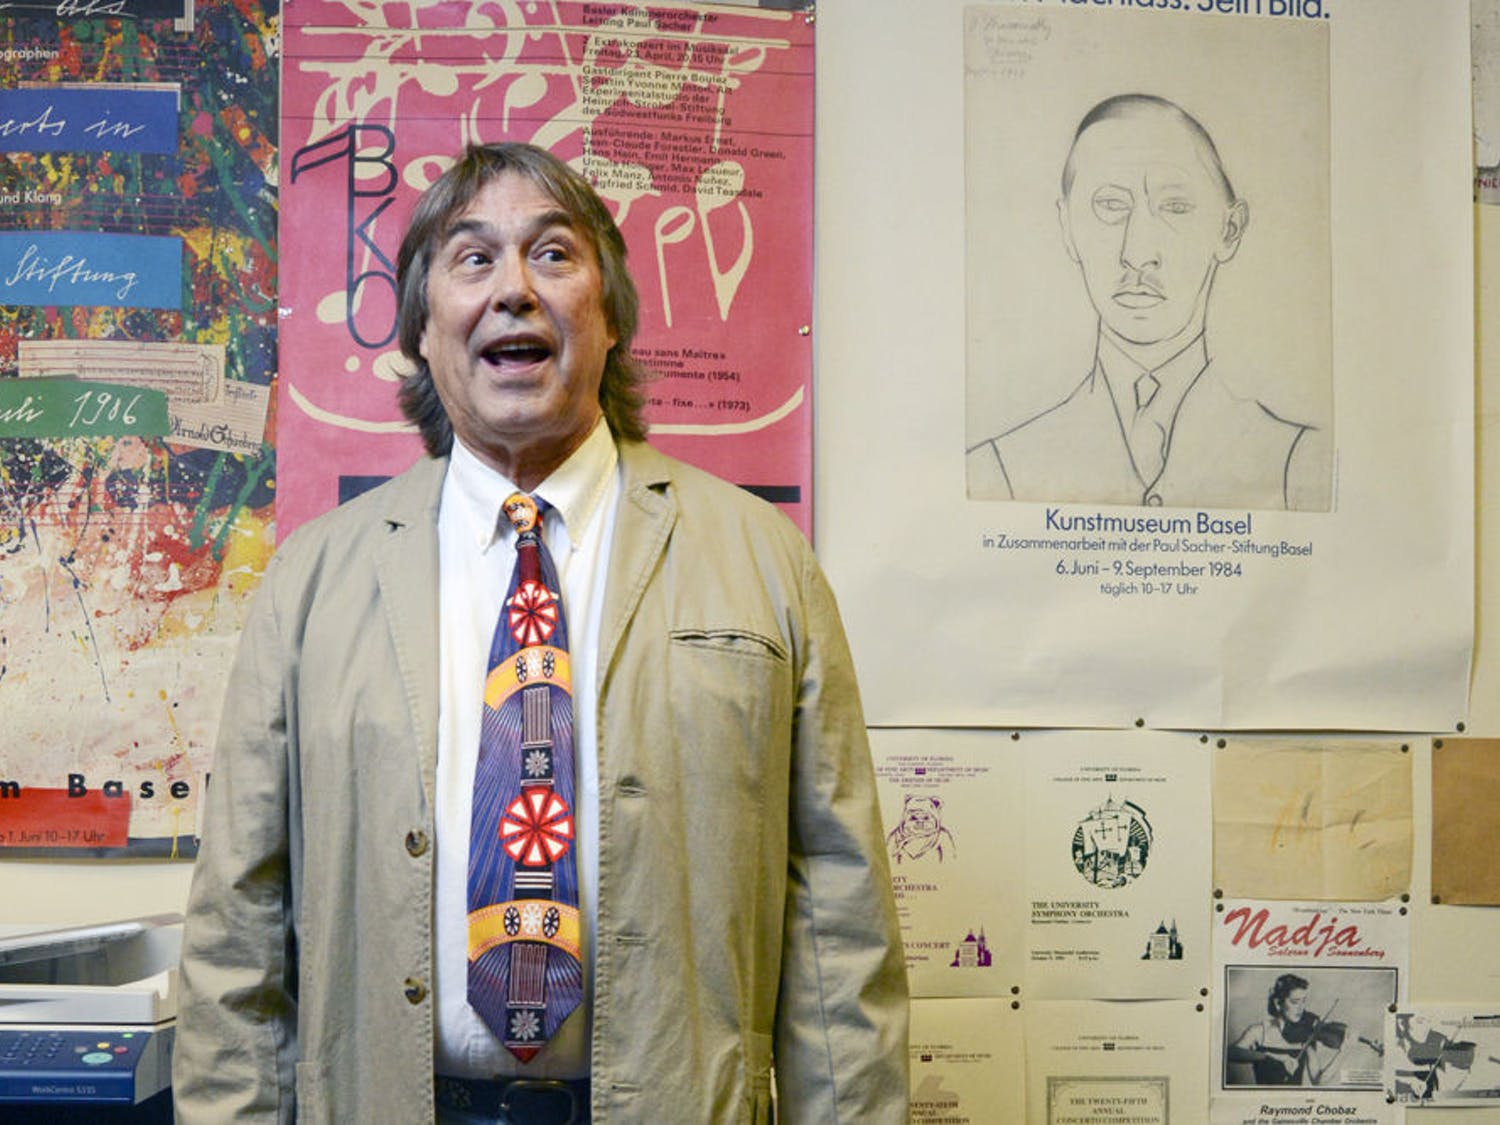 Amid posters of concerts, composers and teachers, Raymond Chobaz poses for a photo in his office in the Music Building. A native of Switzerland, Chobaz left his country at the age of 24 to pursue music education in the U.S.